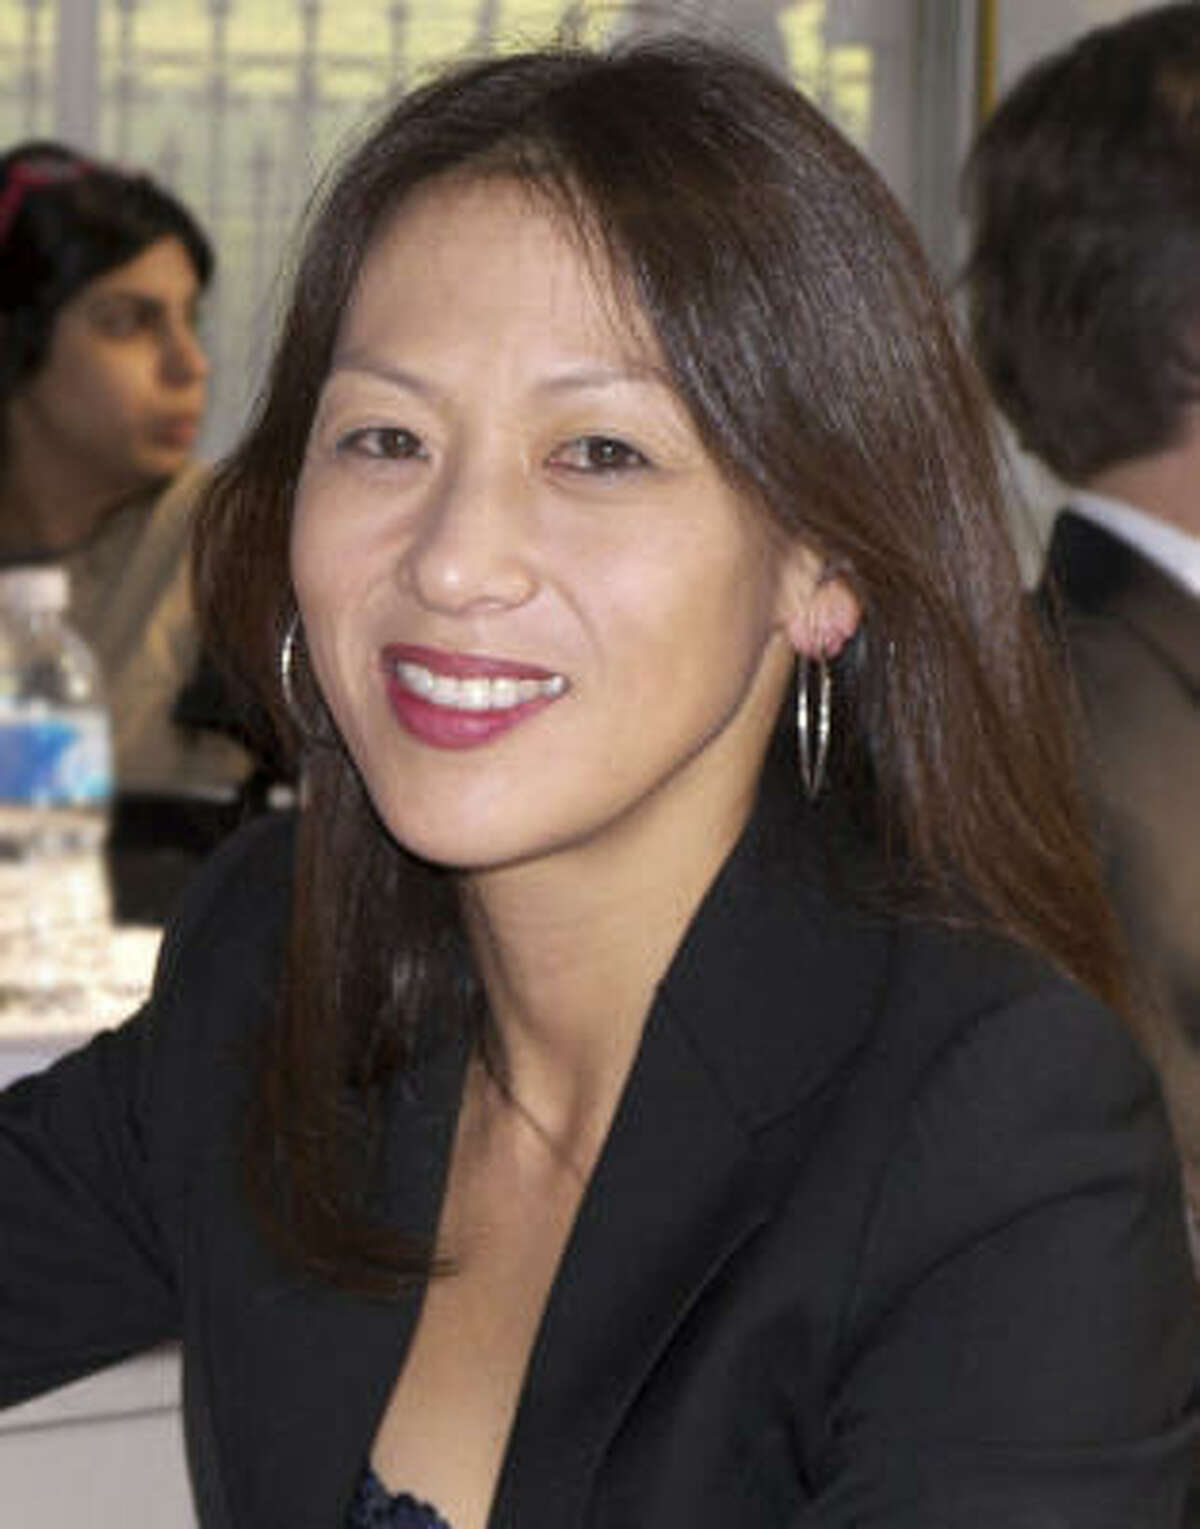 Author Amy Chua said she's surprised by the negative reaction her book has generated.